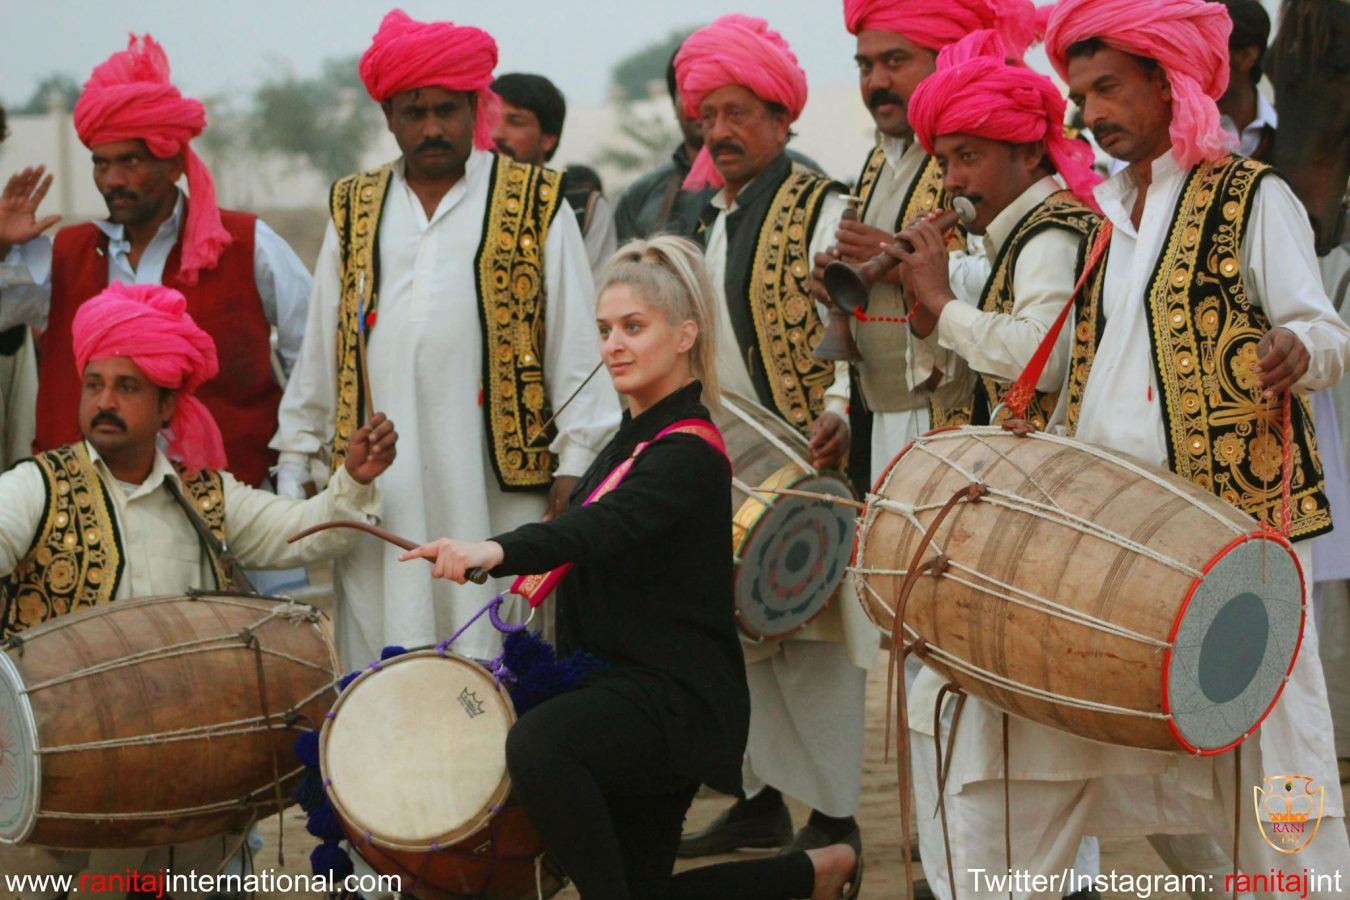 This Cool AF Stunt Involves A Dhol And It's Kinda, Sorta Trippy